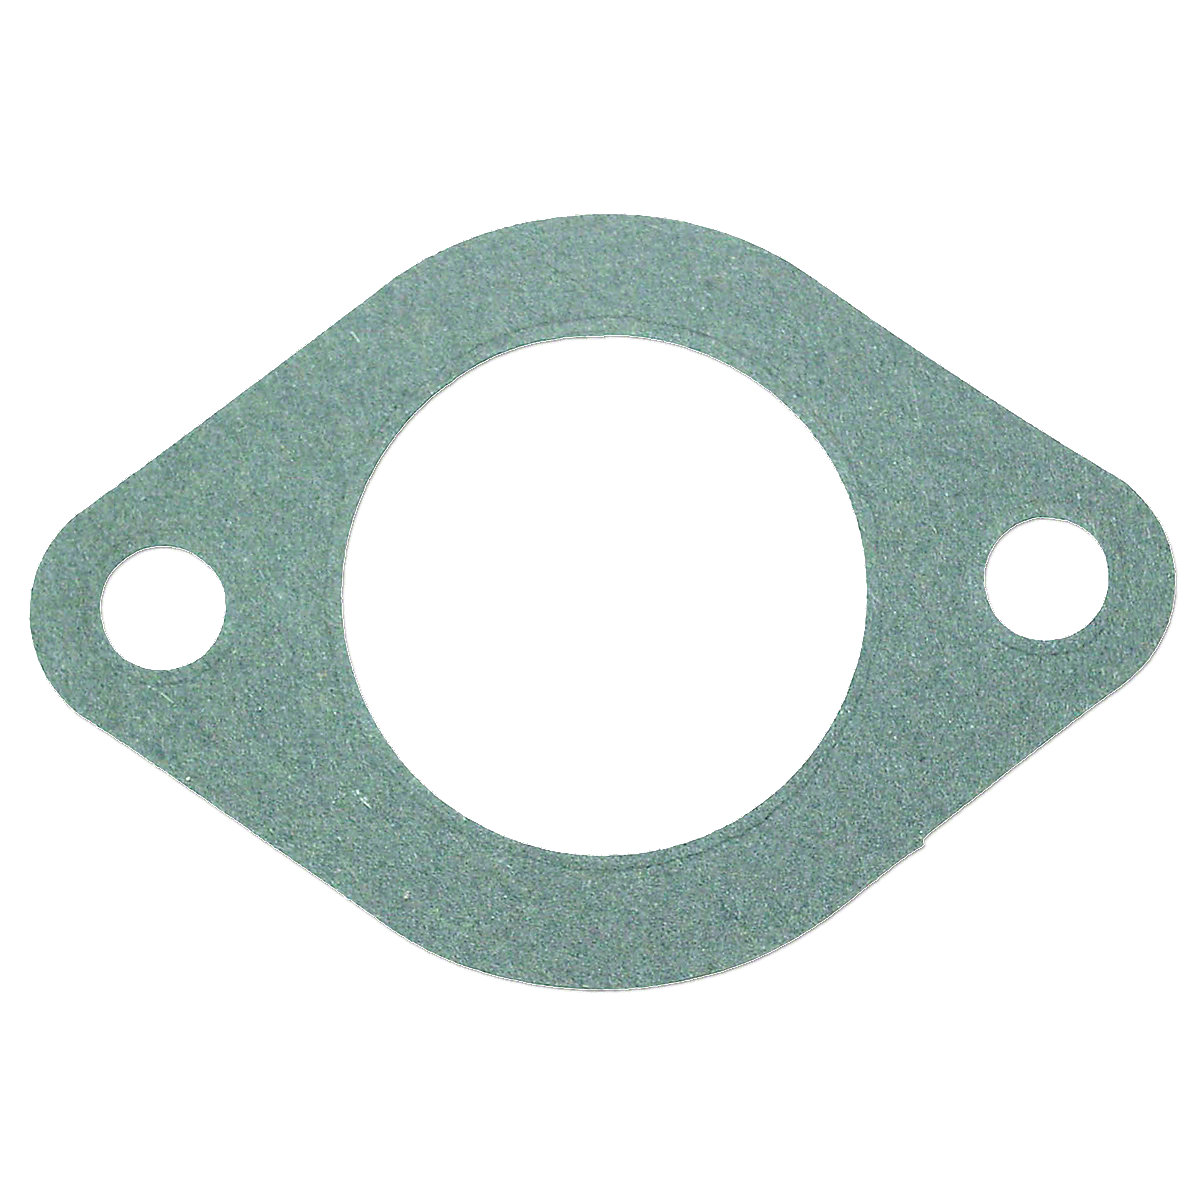 Carburetor Mounting Gasket For Massey Ferguson And Massey Harris Tractors.